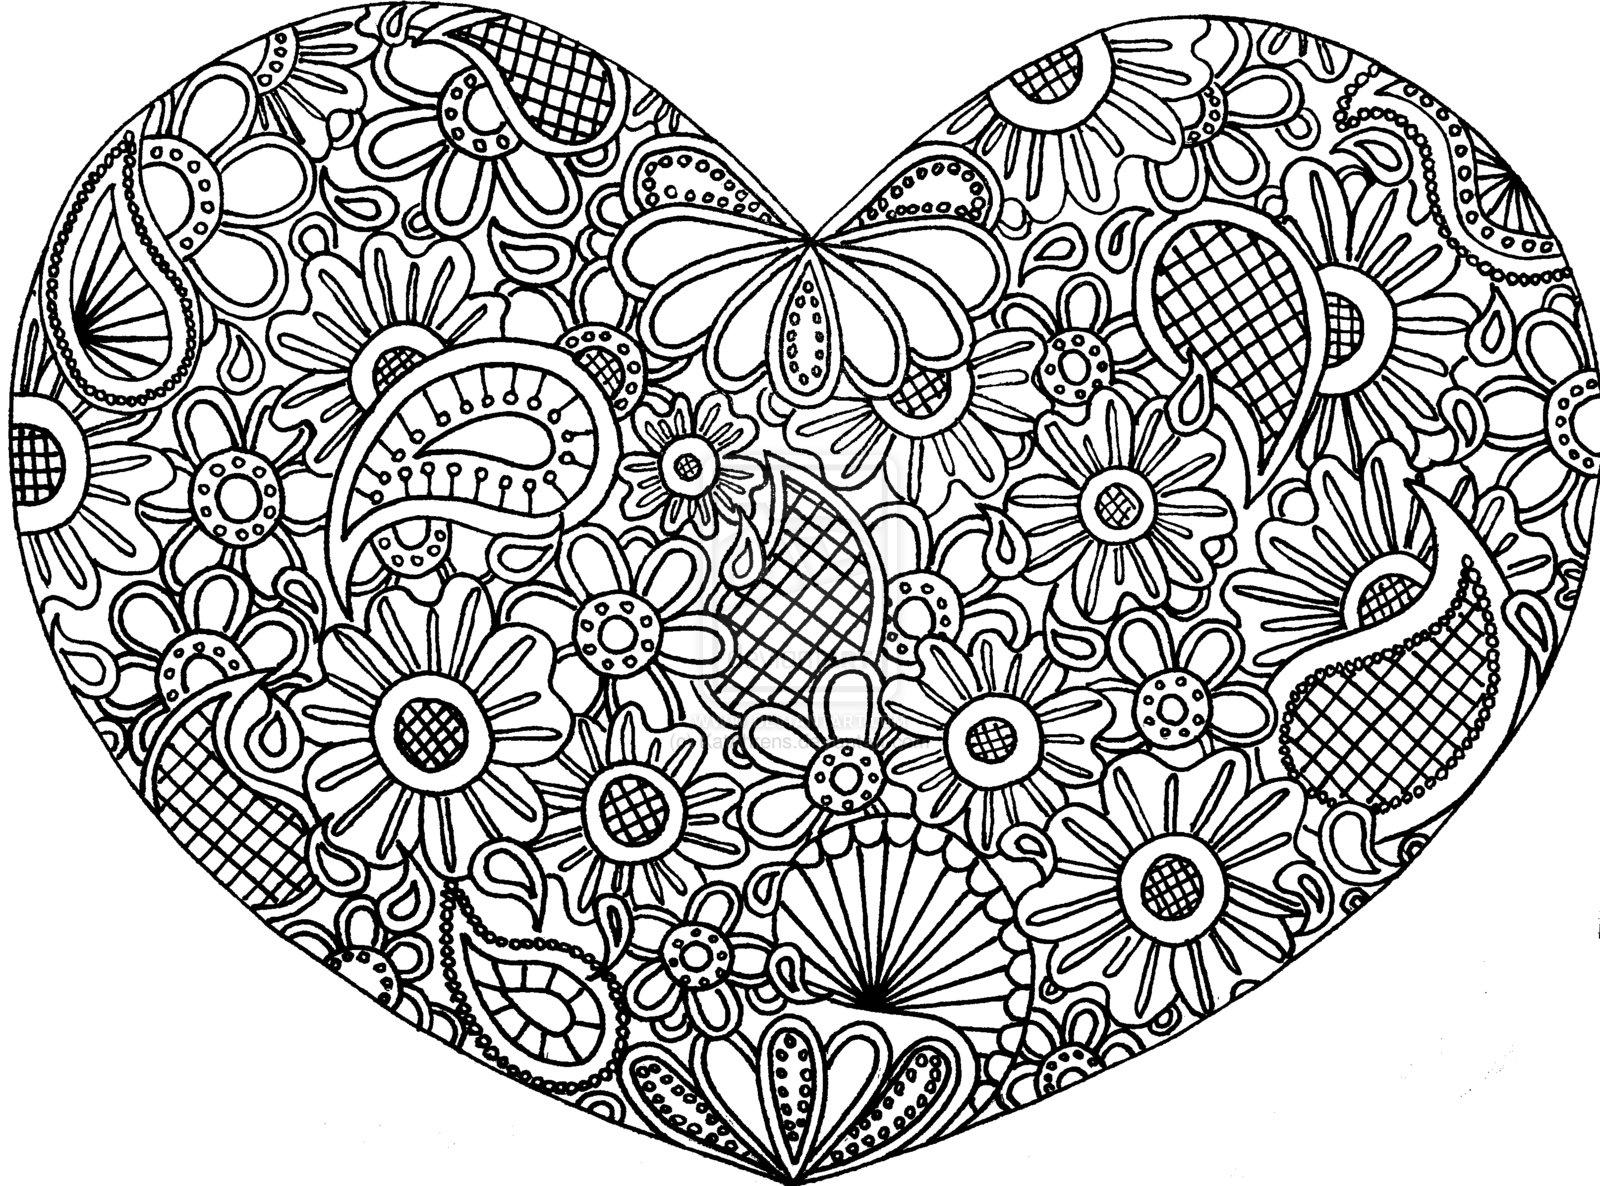 colored zentangles hearts free doodle art coloring pages coloring pages pictures imagixs - Zentangle Coloring Pages